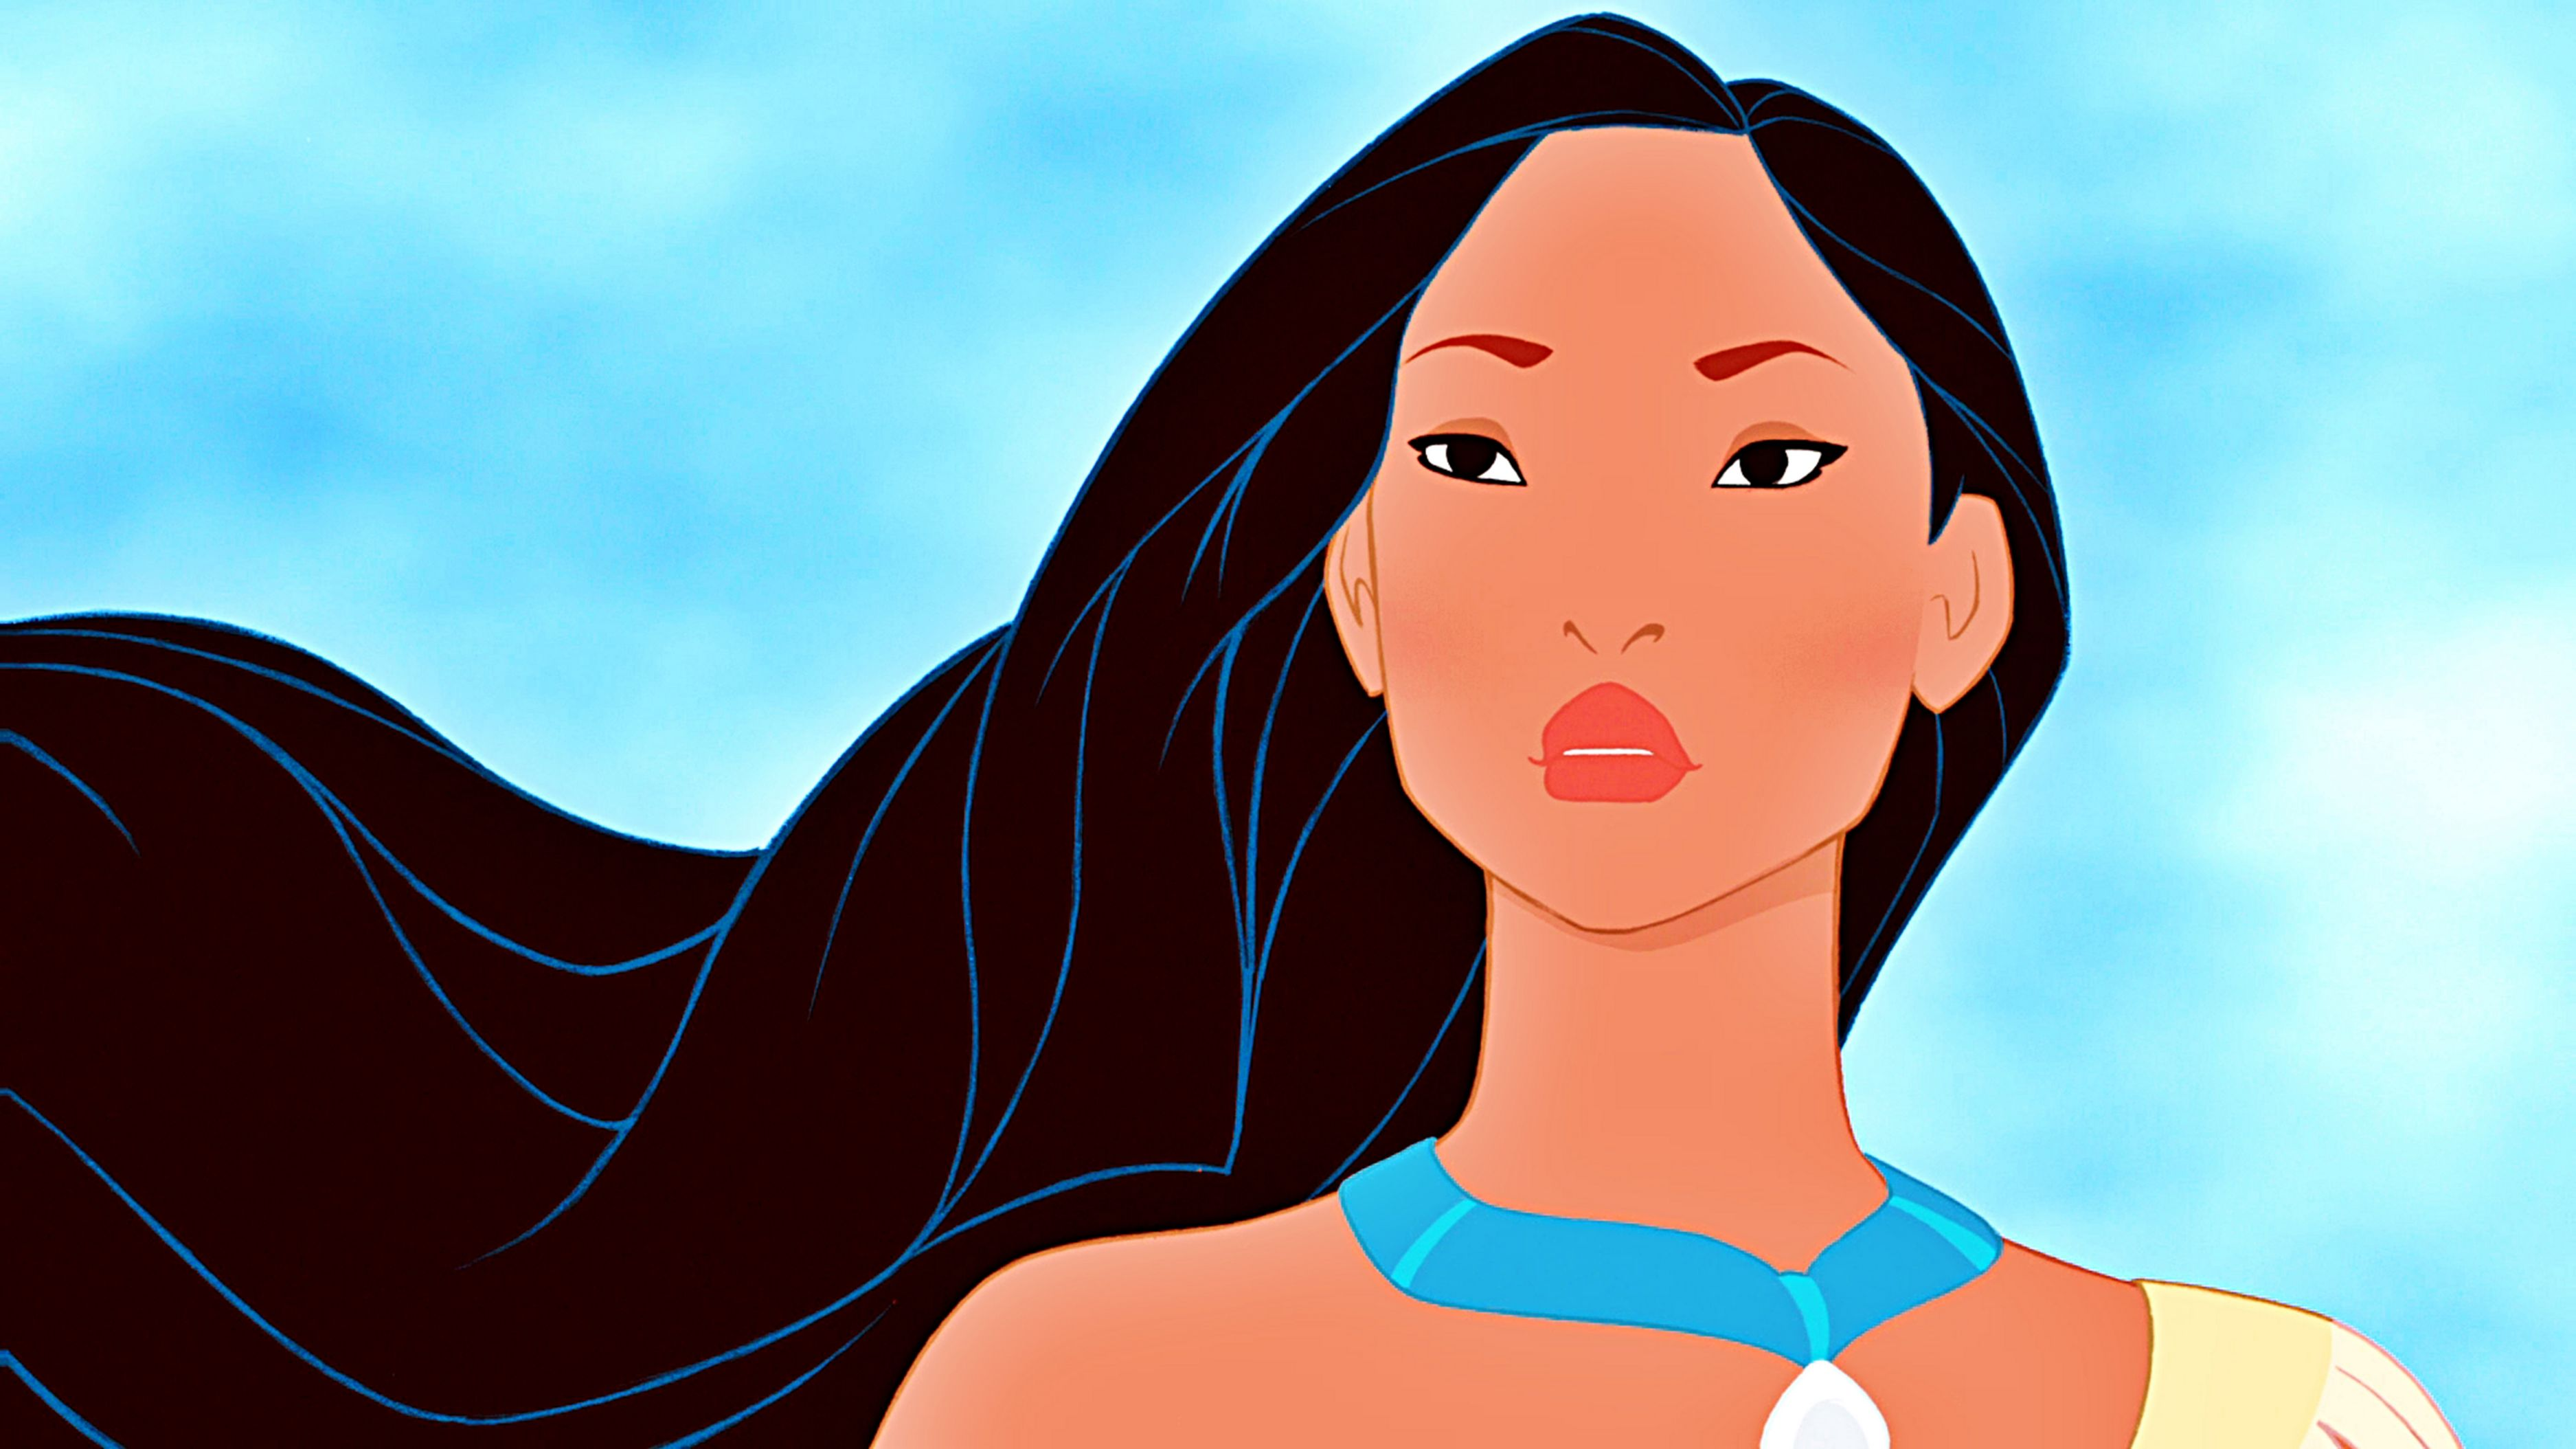 Pocahontas Can You Match The Image To The Disney Female Playbuzz